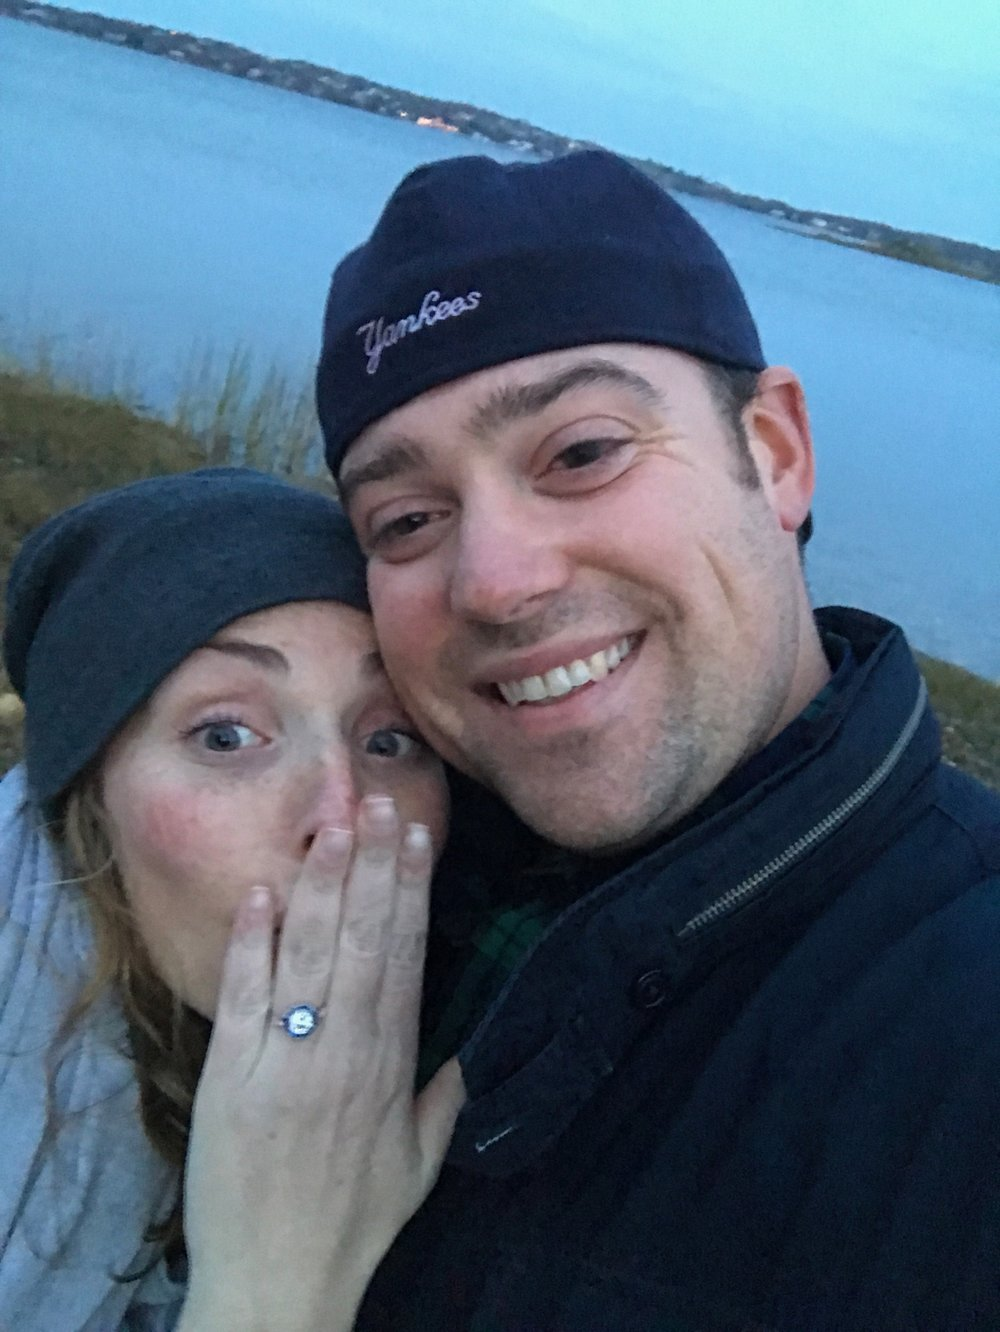 A picture of the newly engaged couple right after he proposed on the beach in Montauk, NY this past weekend. I'm so happy for my sister and soon to be brother!